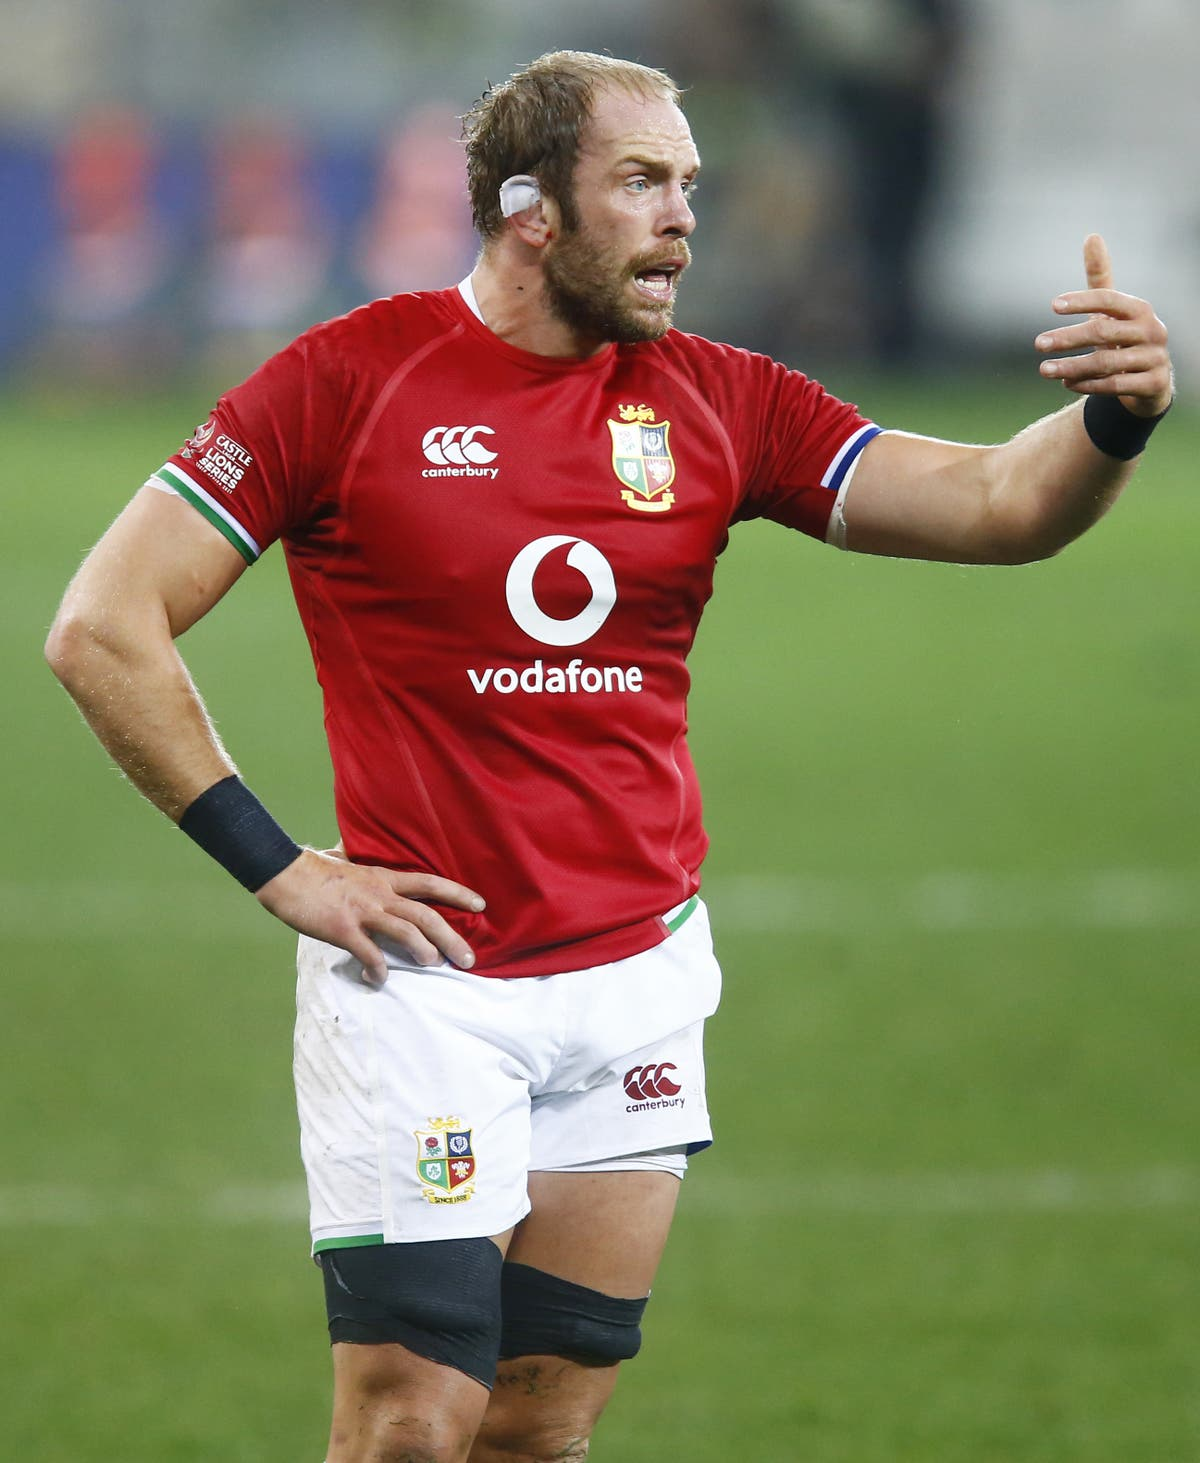 Alun Wyn Jones calls on Lions players to keep their discipline in decider